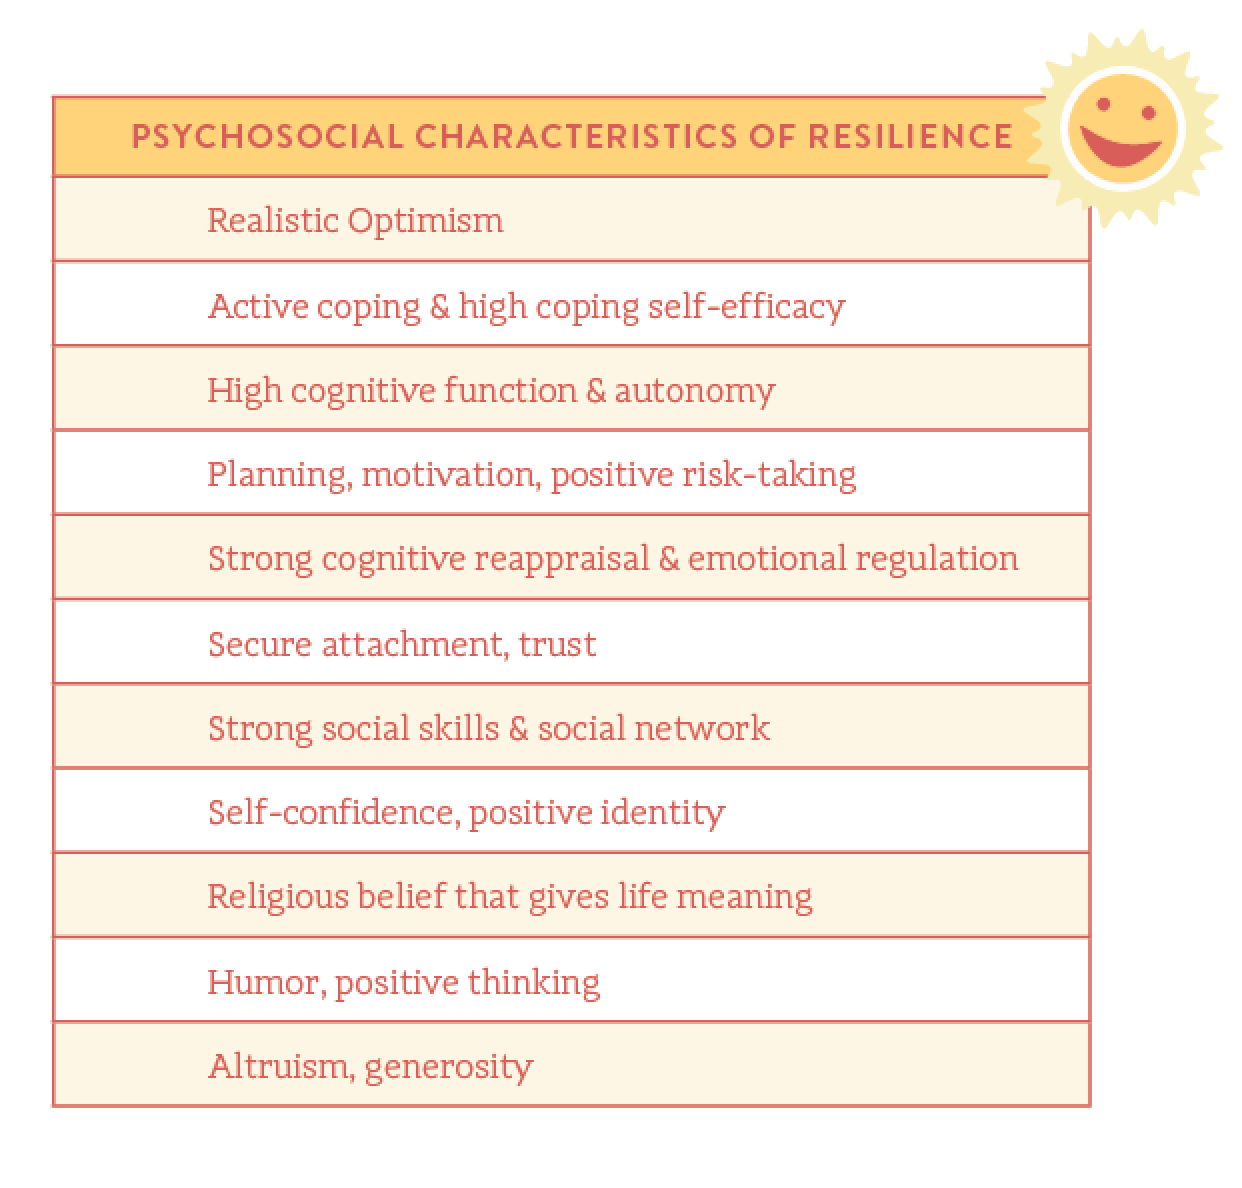 psychosocial characteristics of resilience